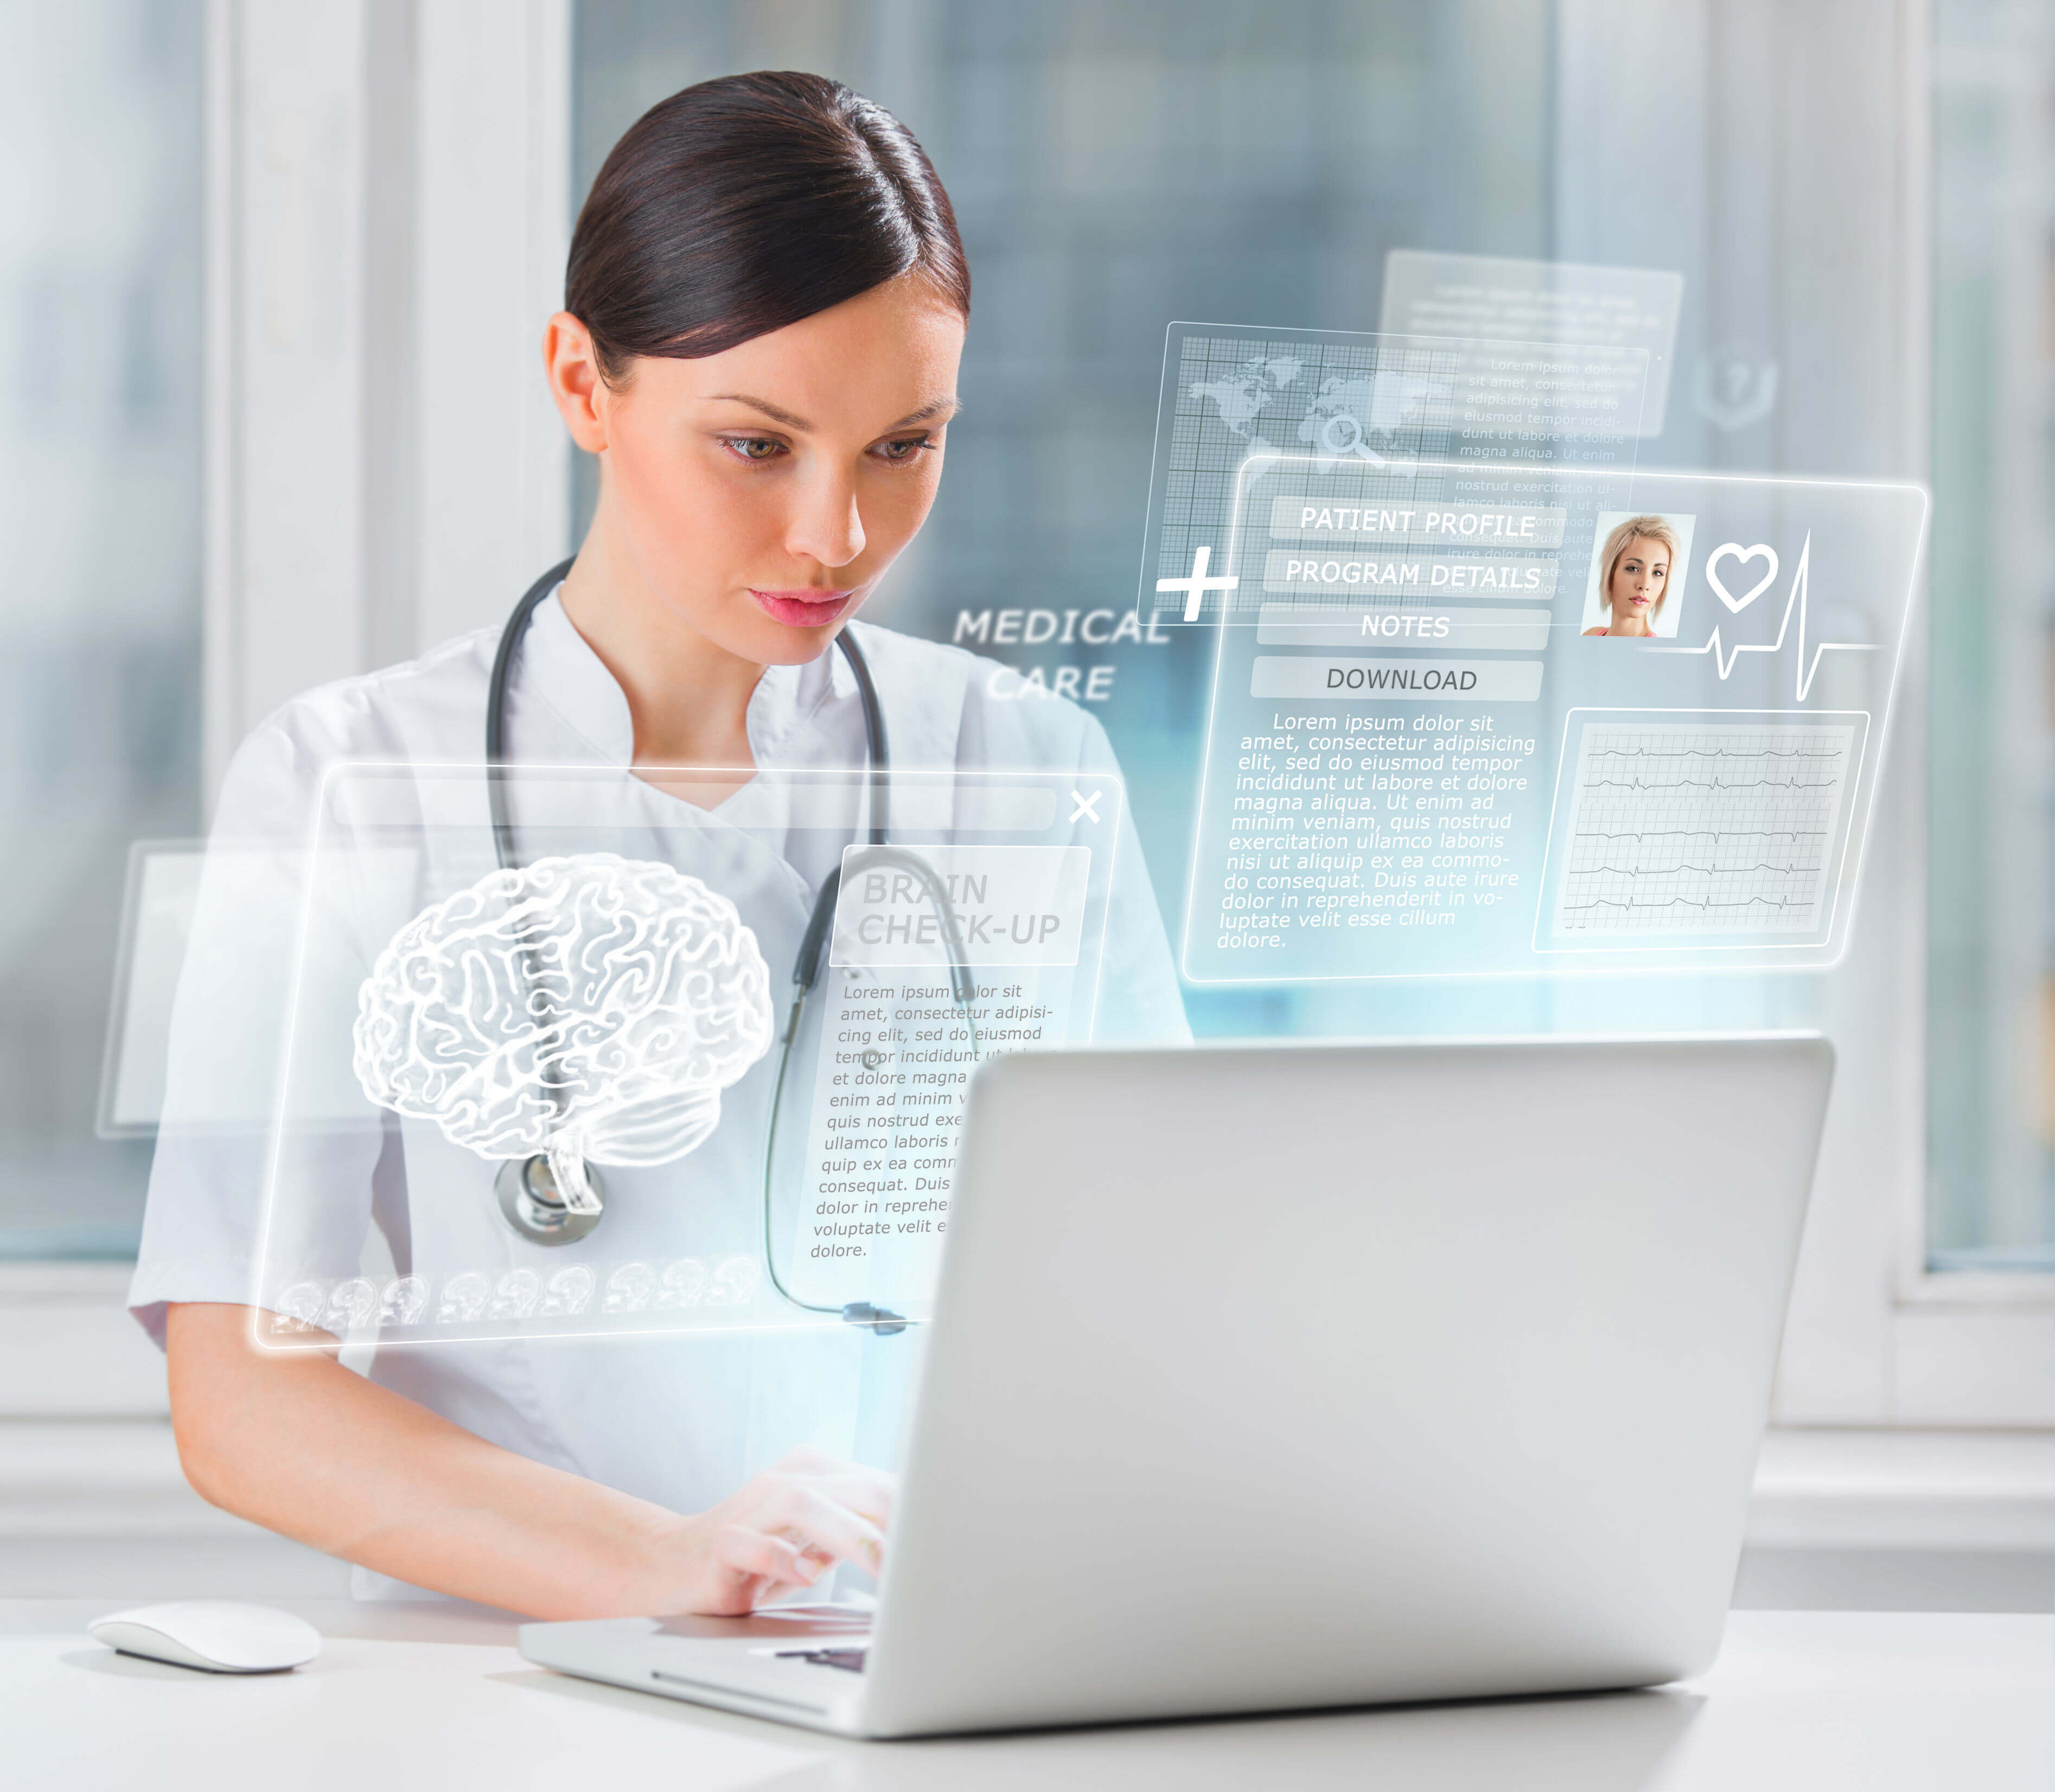 EMR, Electronic Medical Record, EHR, Electronic Health Record, HIPAA, Scanning Medical Records, Thomasville, Tallahassee, Albany, Valdosta, Tifton, Dothan, Jacksonville, Atlanta, AHIMA, GHIMA, FHIMA